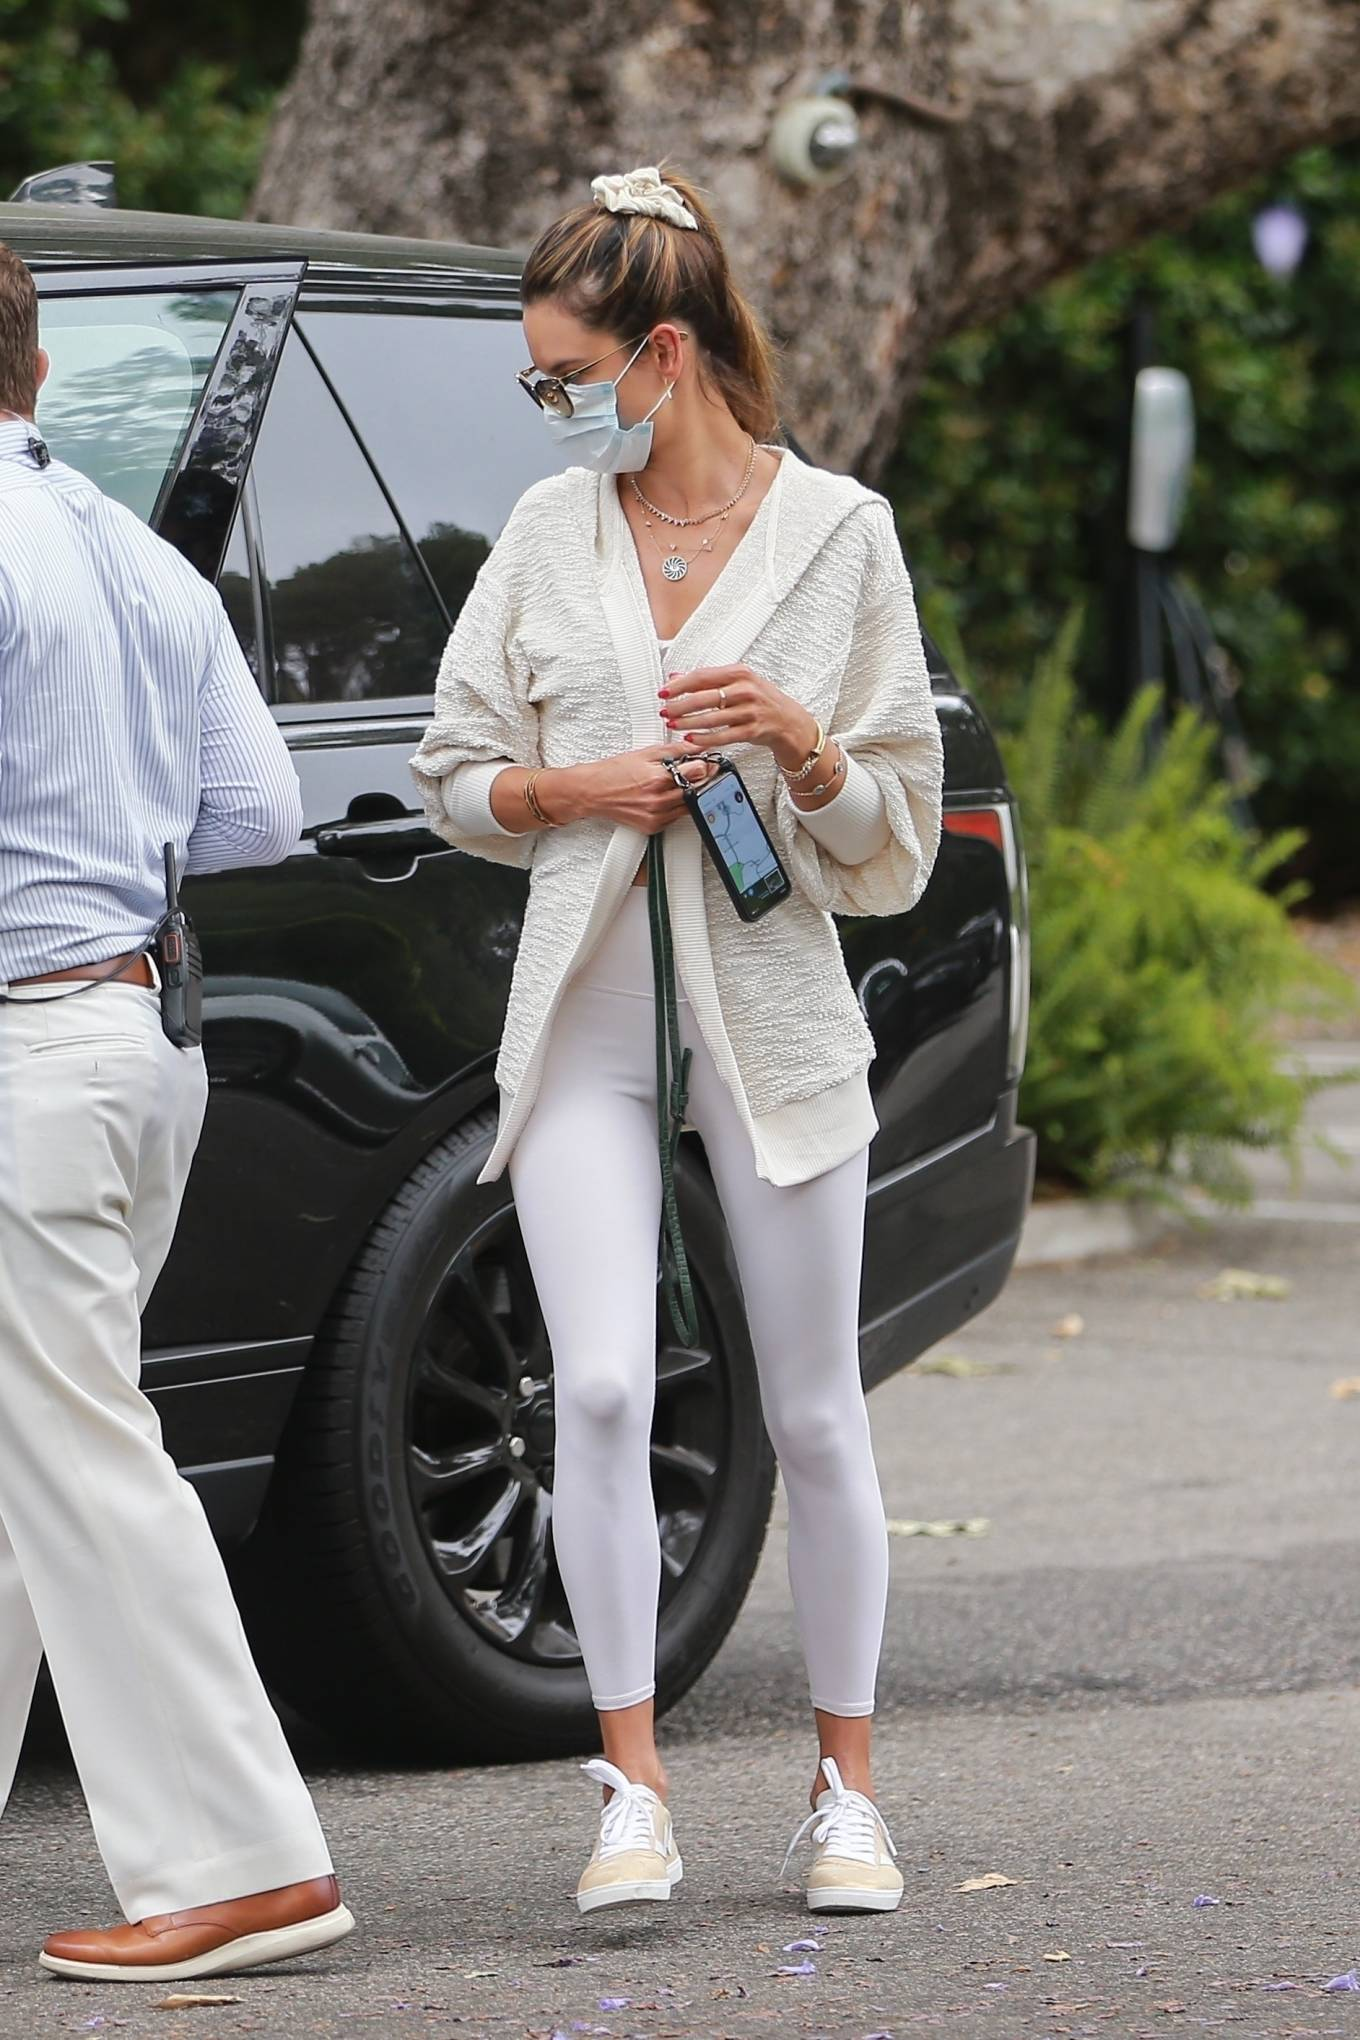 Alessandra Ambrosio - All in white at The Bel Air Hotel